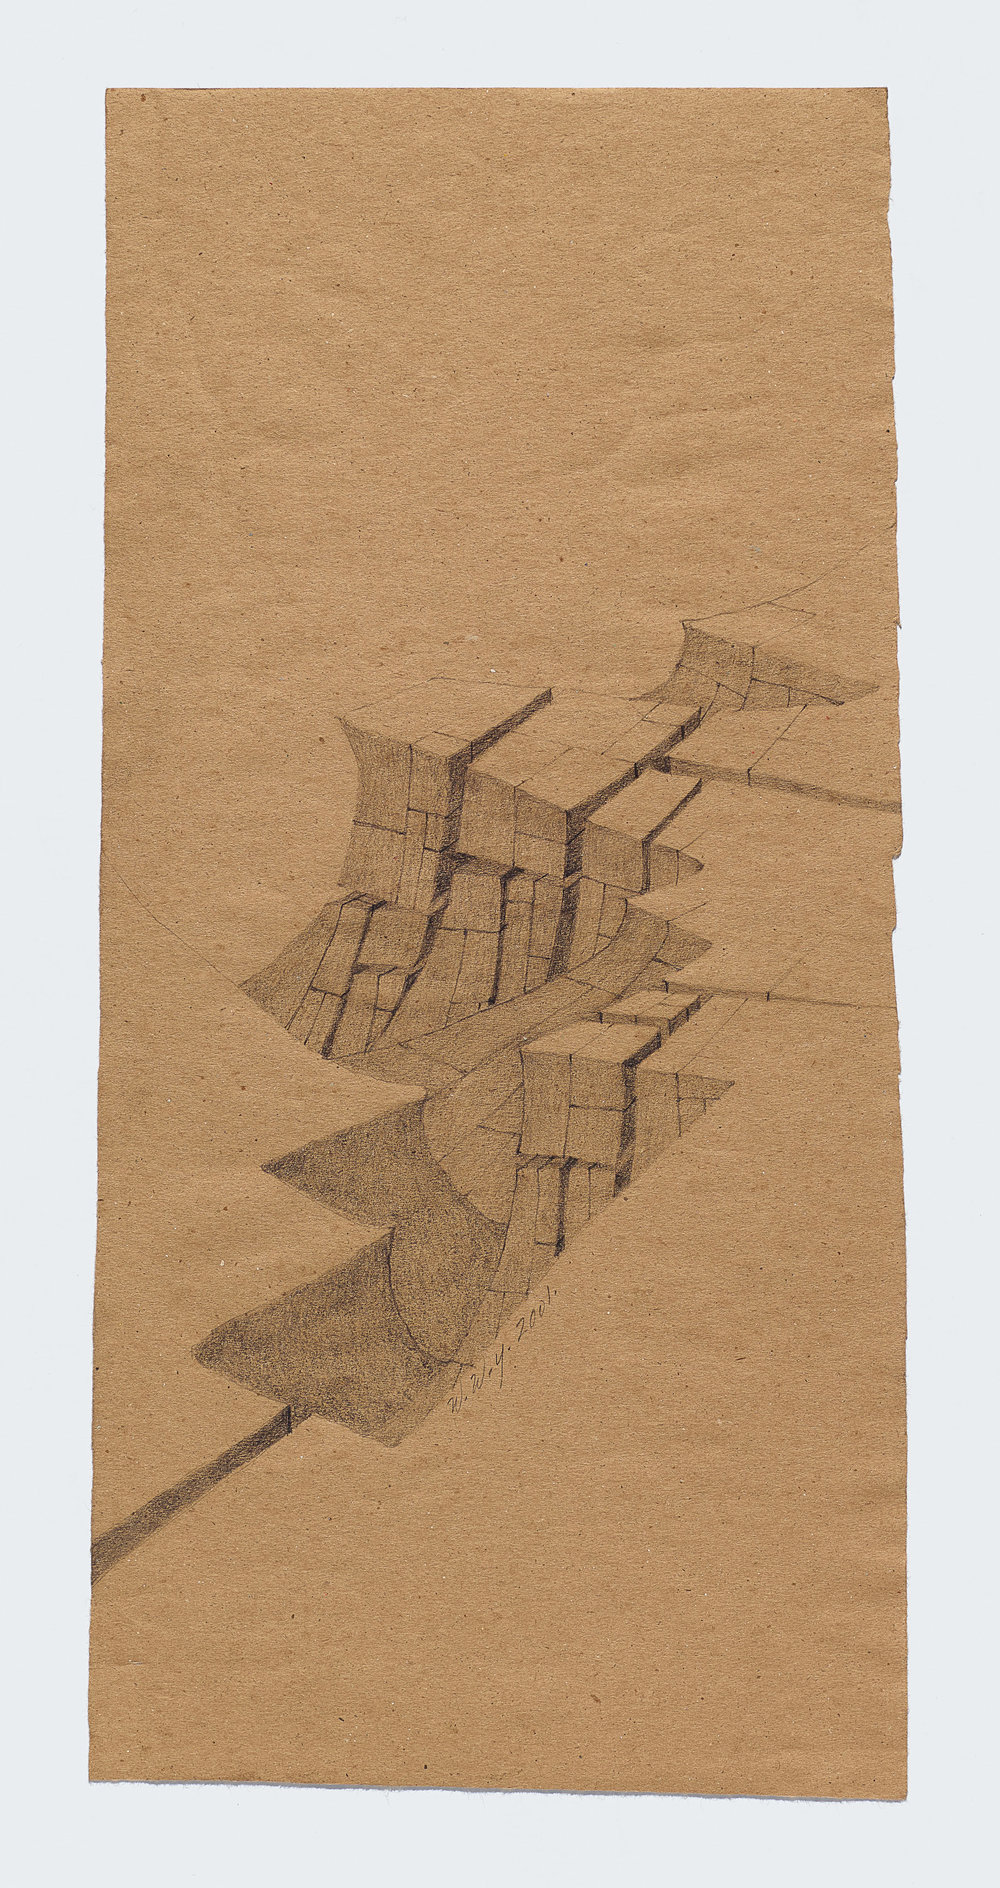 Willie Young Untitled, 2001. Graphite on Paper, 17.25 x 8.25 in. Price on Request Reference 1911